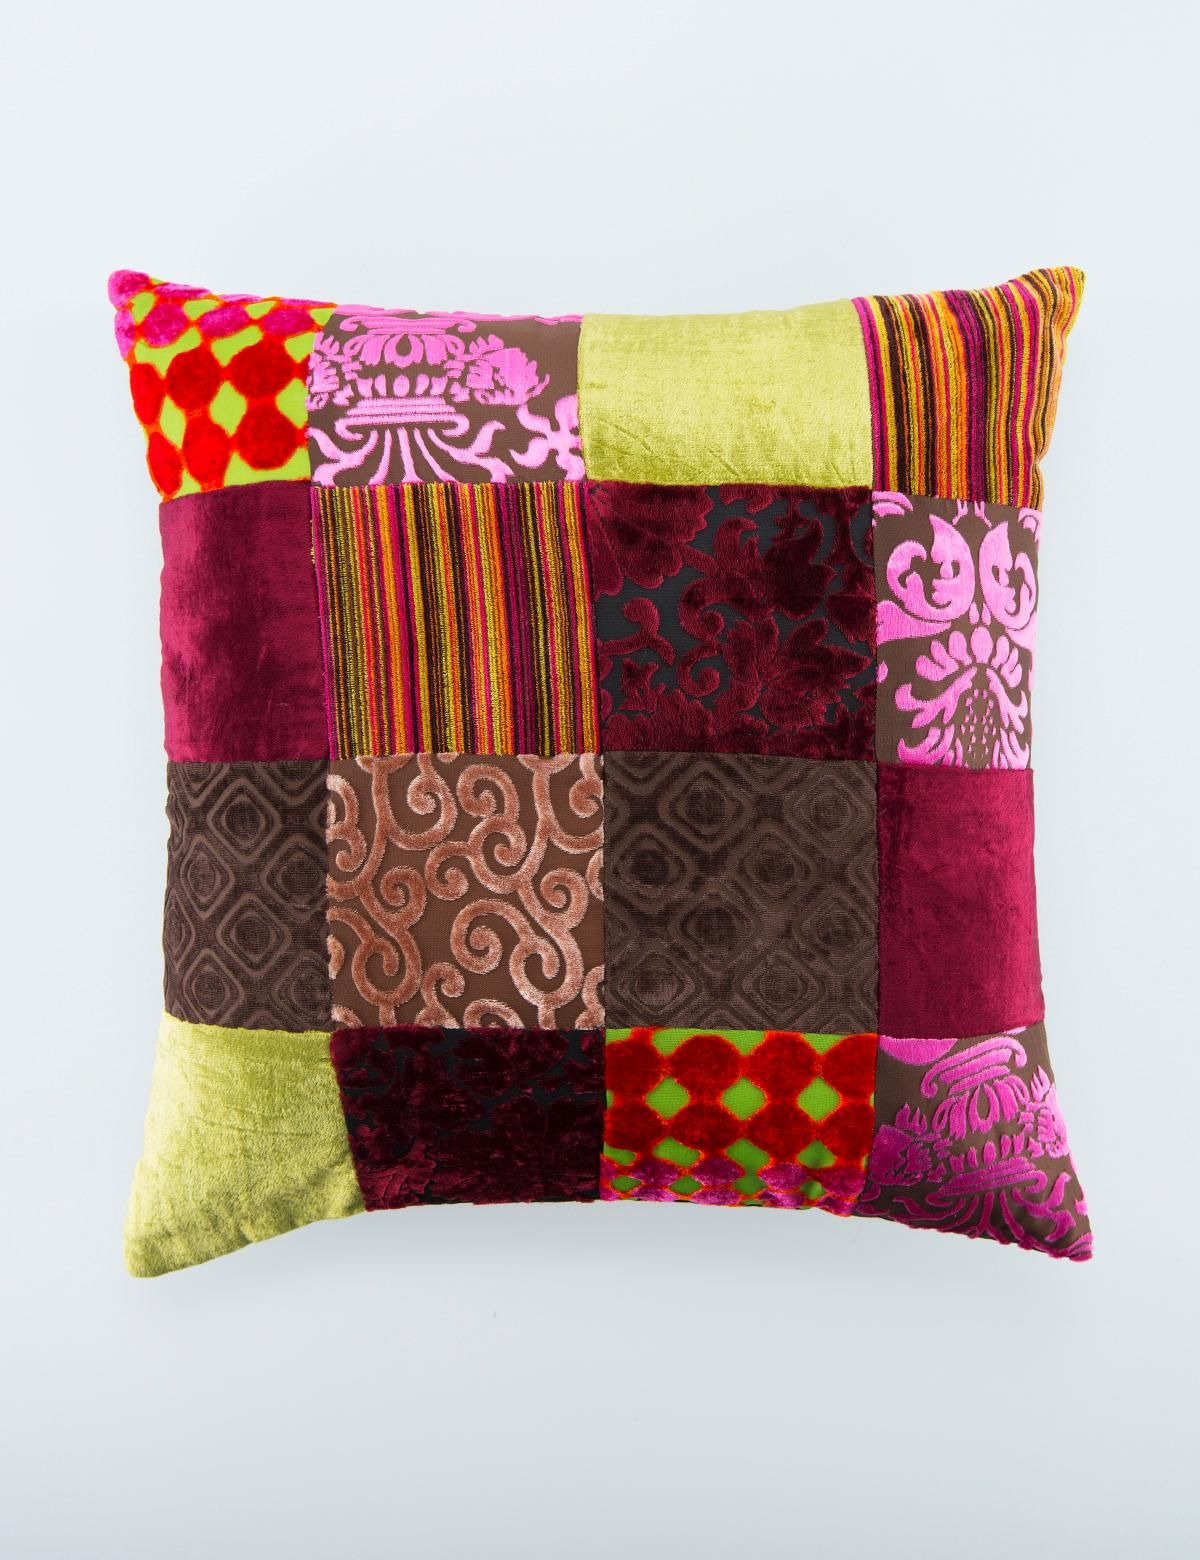 Pillows Online Patch Cushion Multi Pillow Pillow Pillows Interior